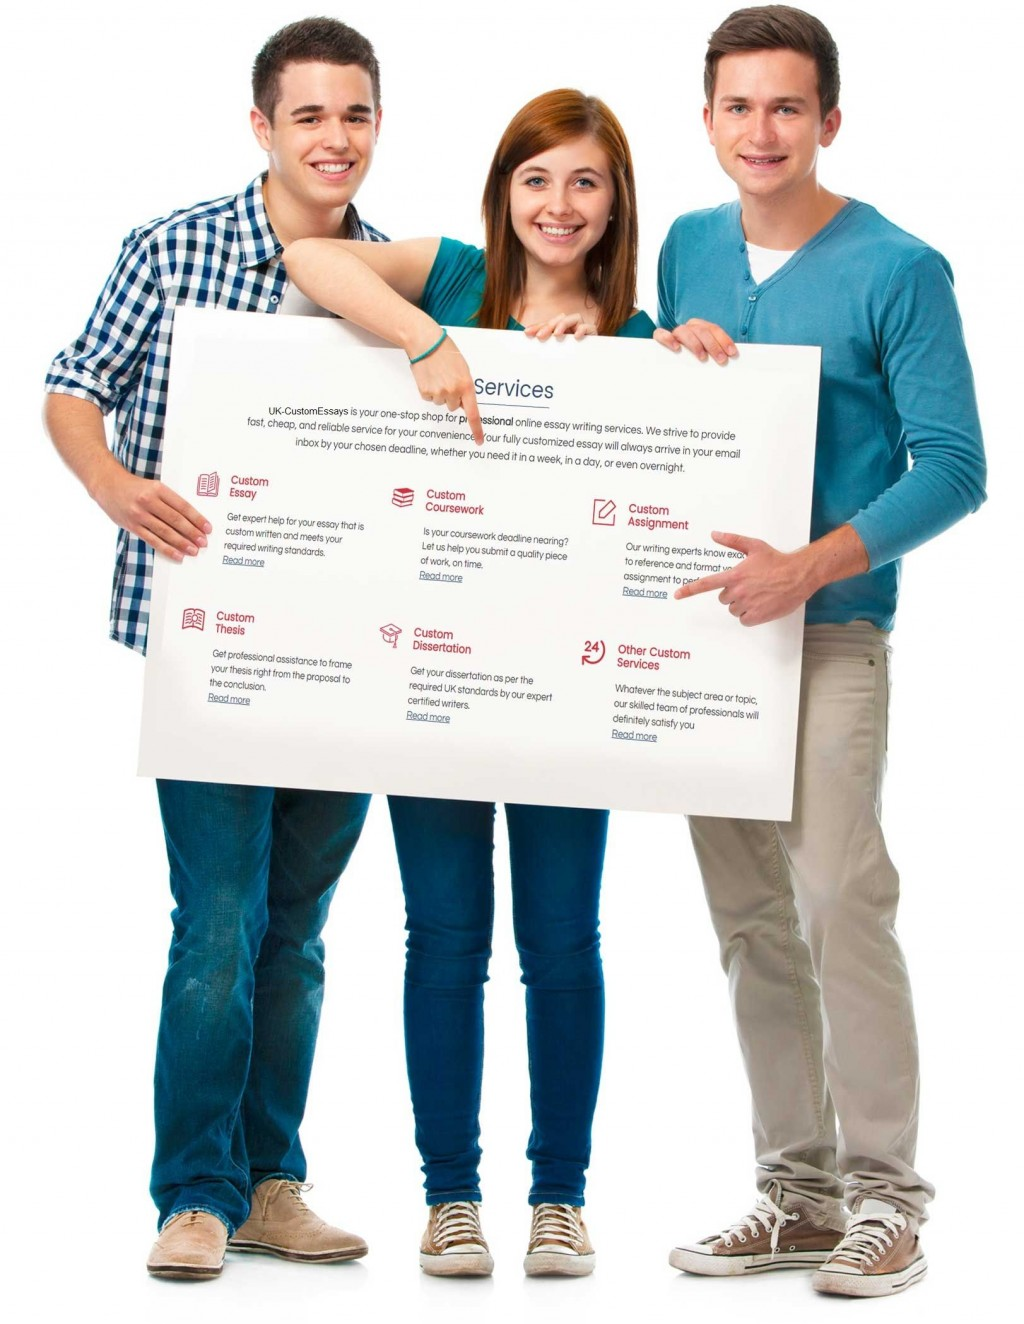 009 Custom Essay Writing Example Awesome Services Canada Reviews Service Large